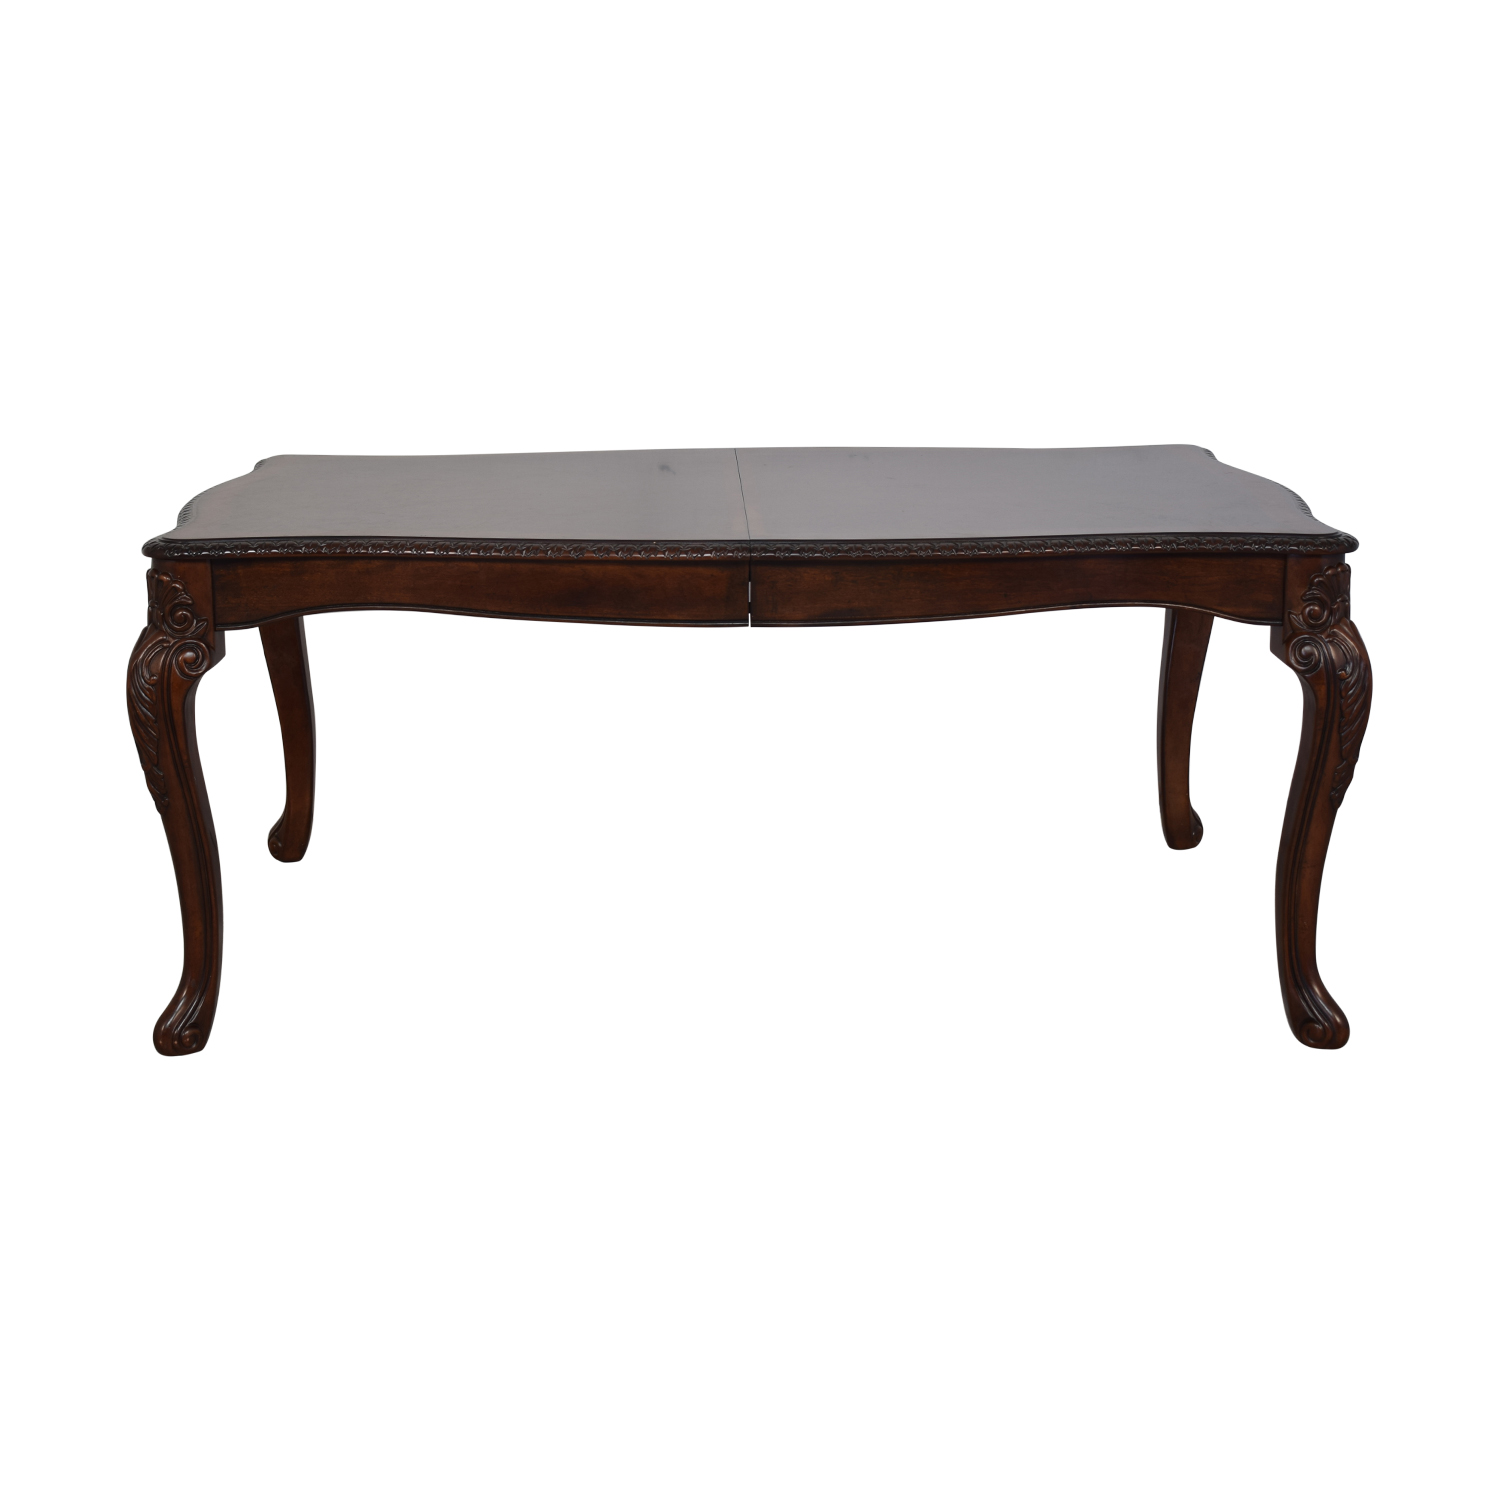 buy Macy's Expandable Dining Table Macy's Tables